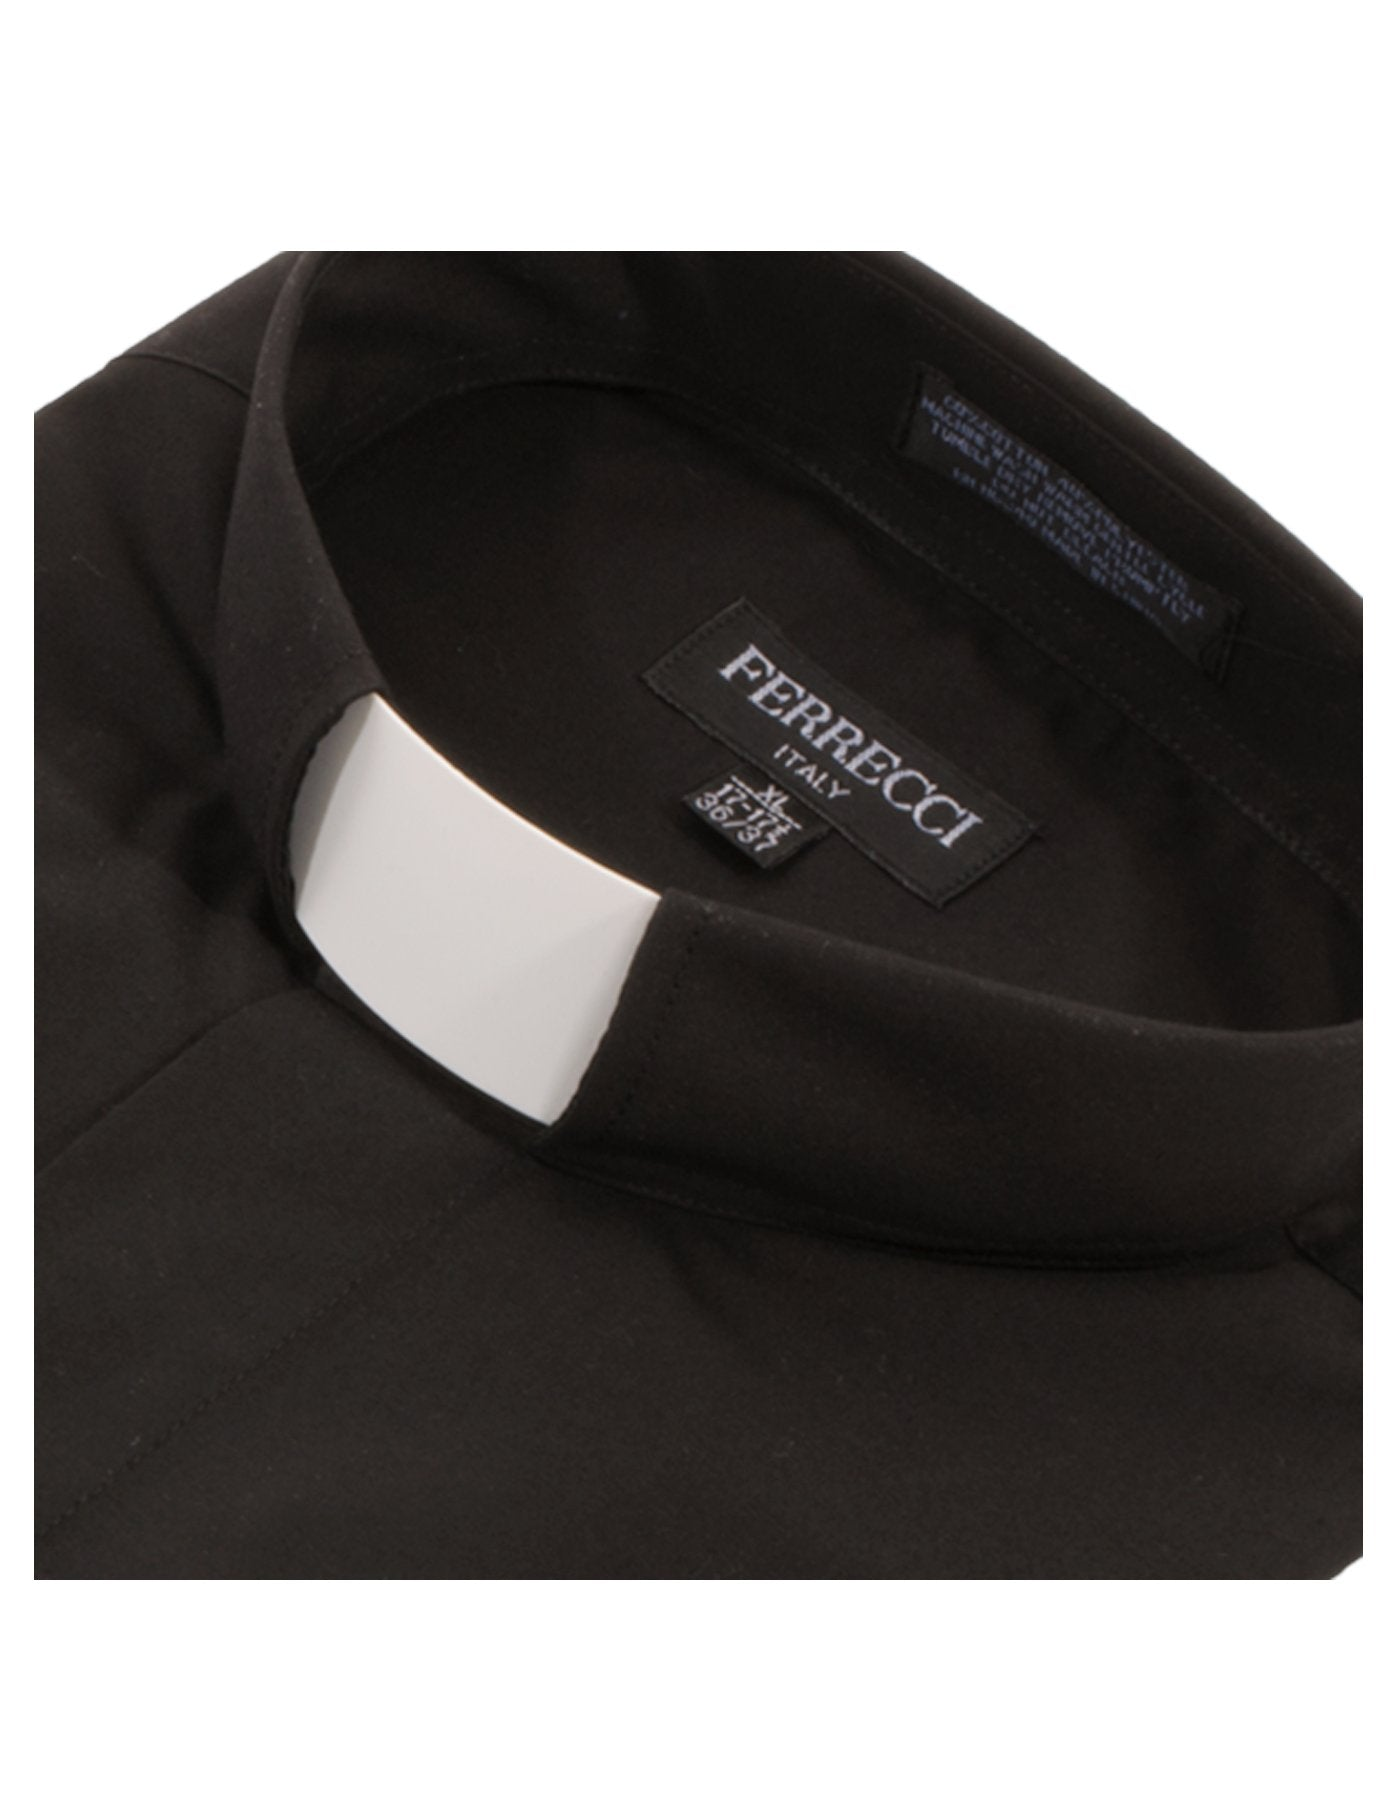 Black Clergy Deacon Bishop Priest Mandarin Collar Dress Shirt - Giorgio's Menswear